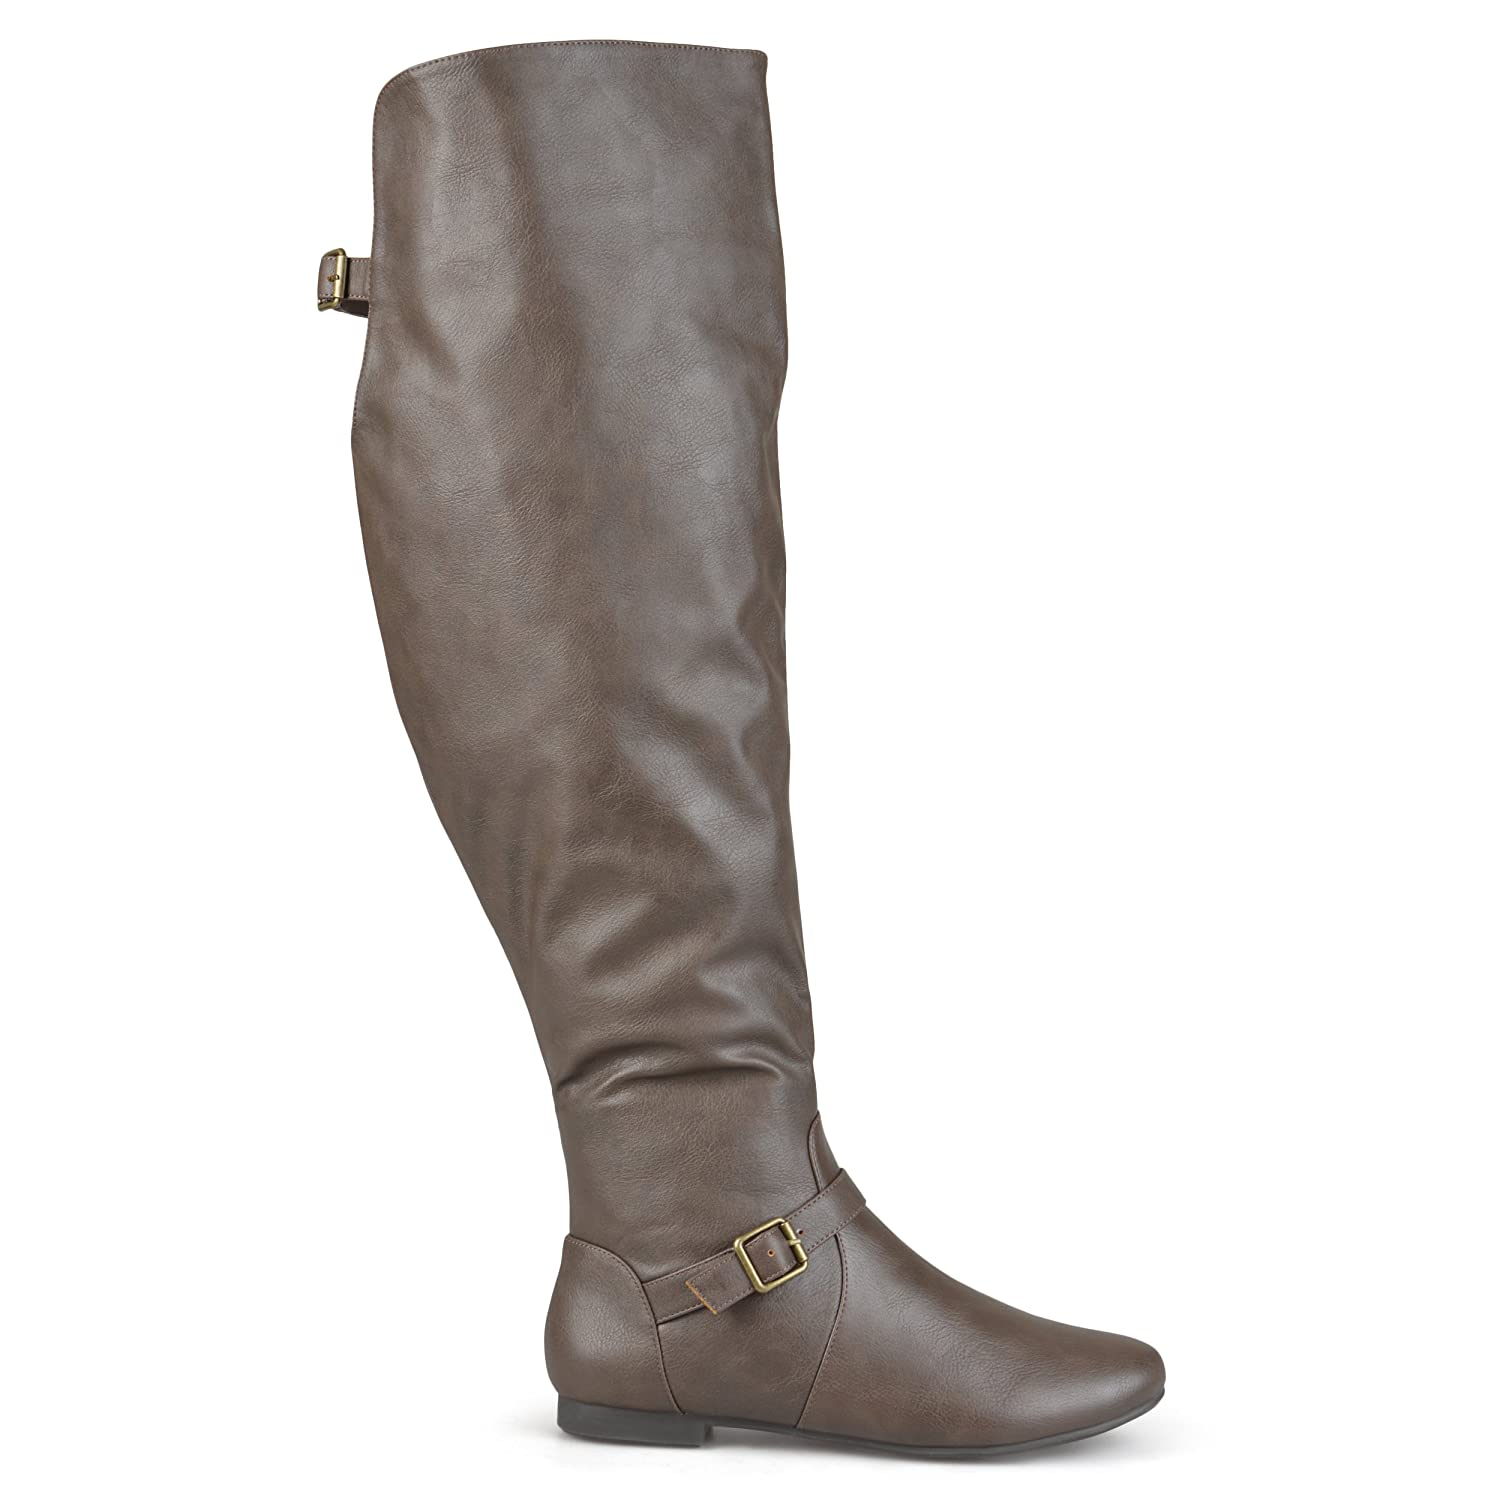 Brinley Co Women's BARN Over The Knee Boot